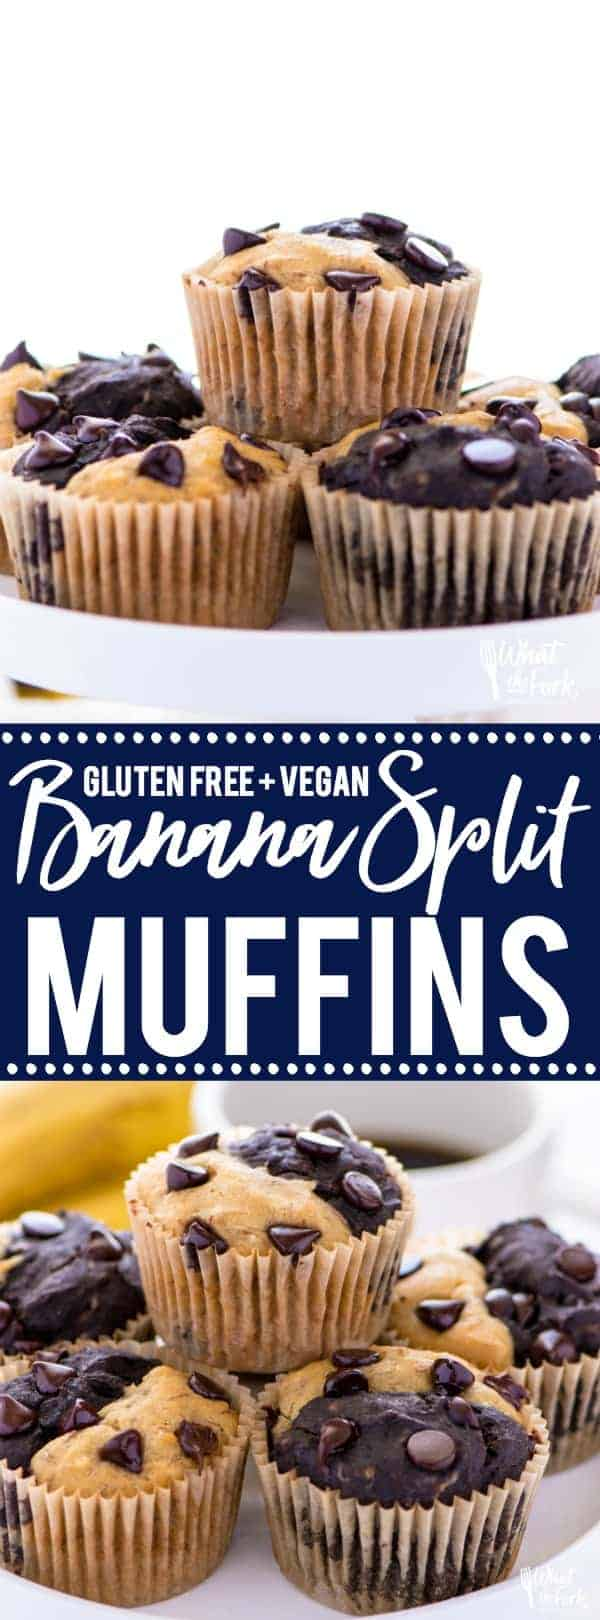 Gluten free vegan banana split muffins are a great way to use up old bananas, especially if you want to try something different from banana bread or banana muffins. This muffin recipe is easy to make, freeze well, and are great for breakfast on busy mornings! @whattheforkblog   whattheforkfoodblog.com    vegan breakfast recipes   gluten free recipes   easy breakfast recipes   homemade muffins   chocolate muffin recipes   recipes with bananas   #breakfast #muffins #glutenfree #vegan #easyrecipes